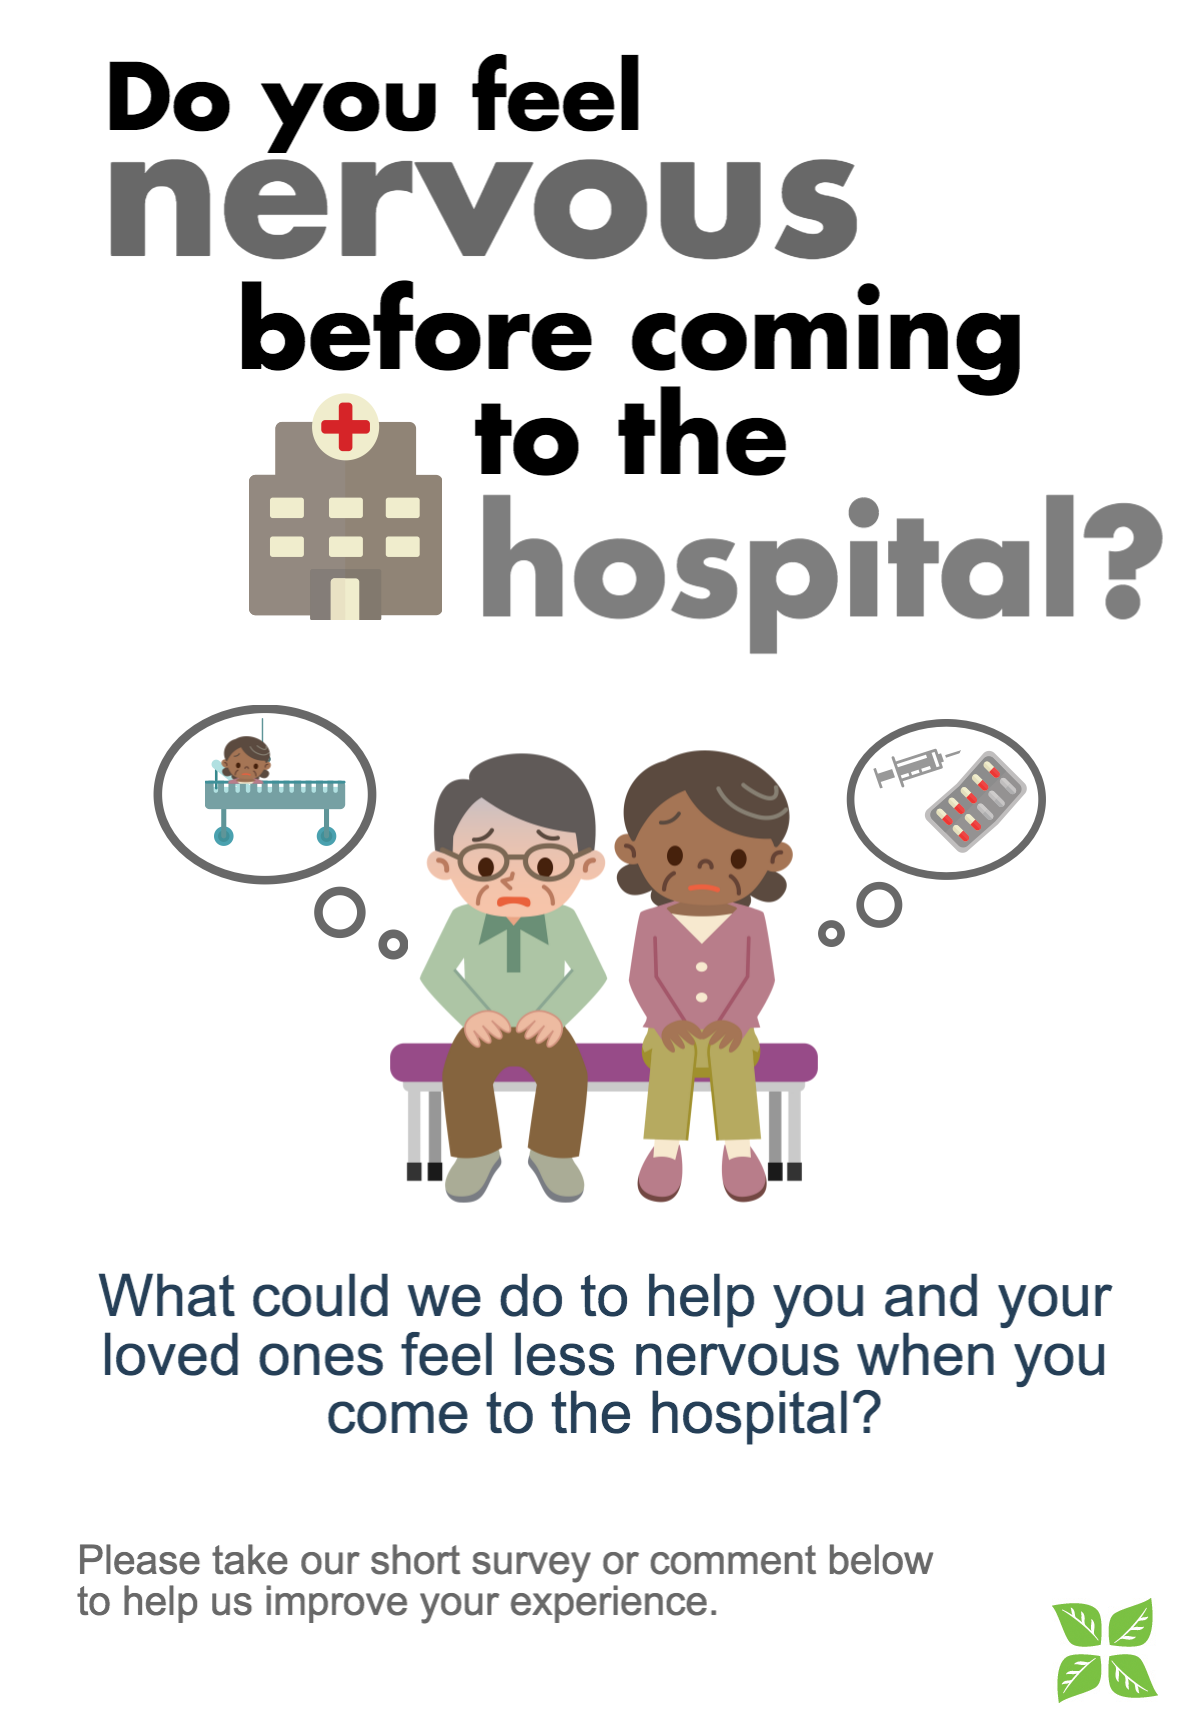 http://sunnybrook.ca/uploads/1/patient-engagement/hospital-anxiety-2.png